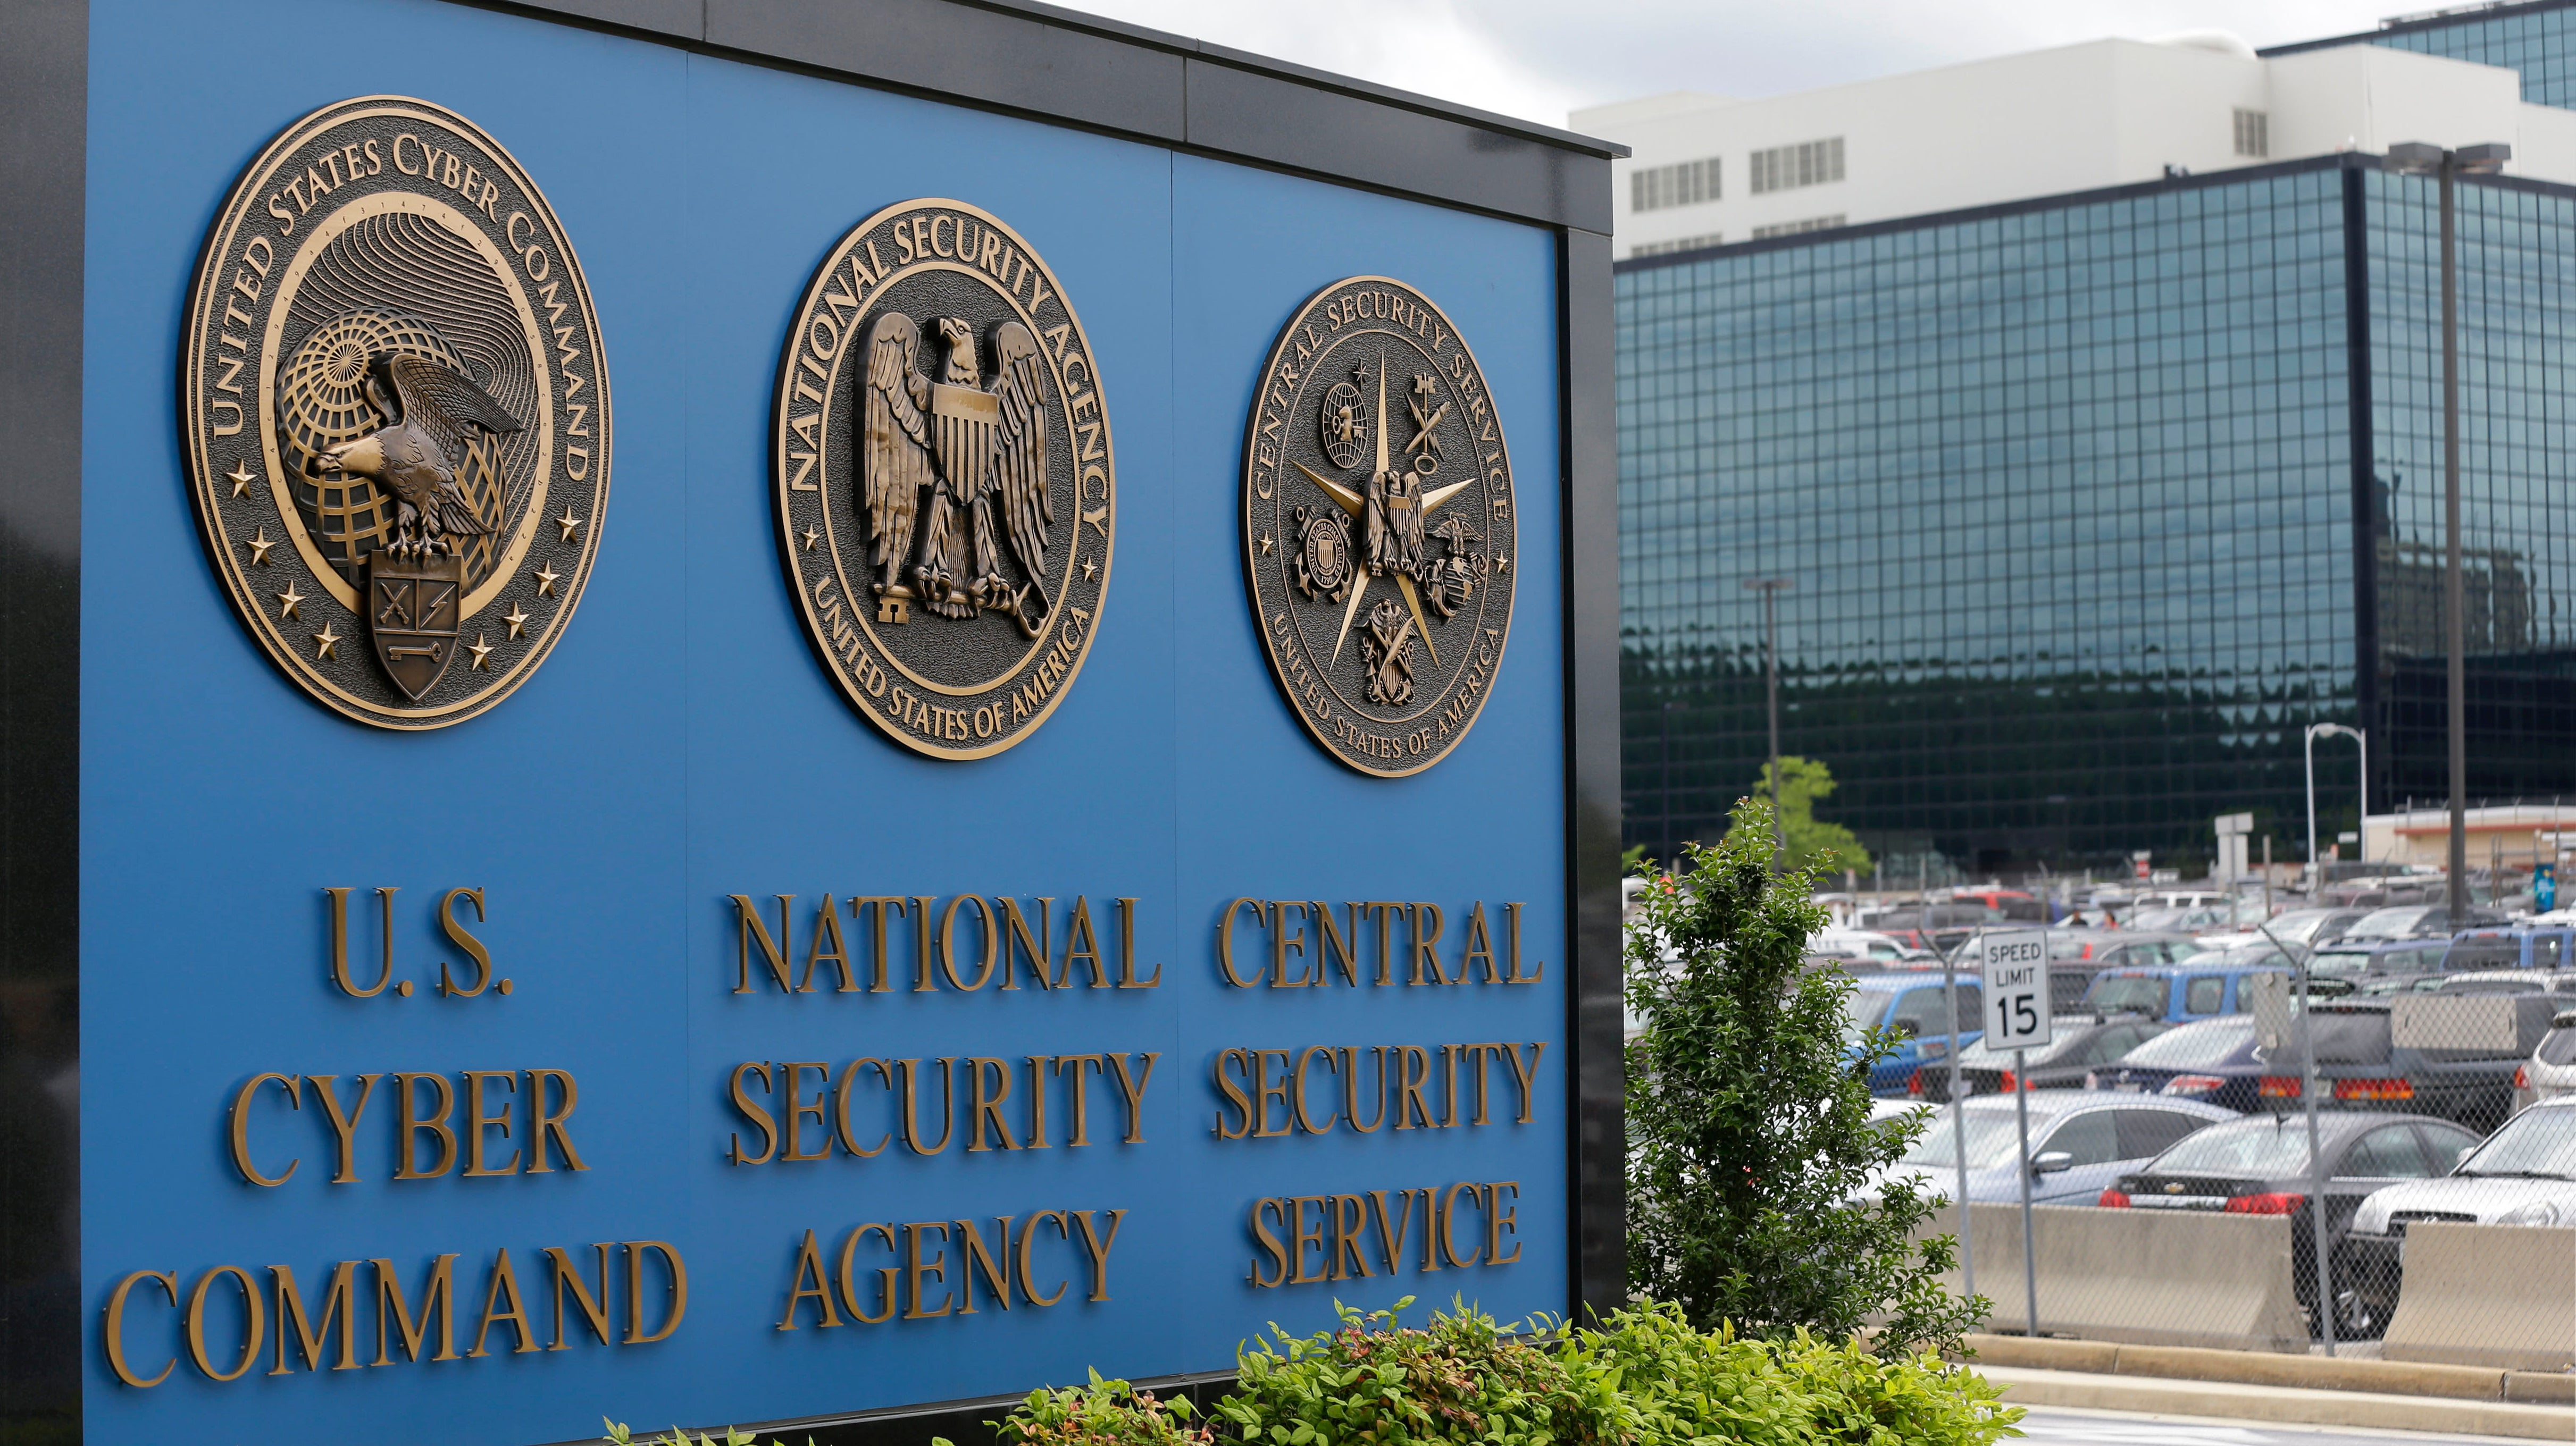 Report: The NSA's Domestic Metadata Collection System Is Not Being Used And May Be Discontinued